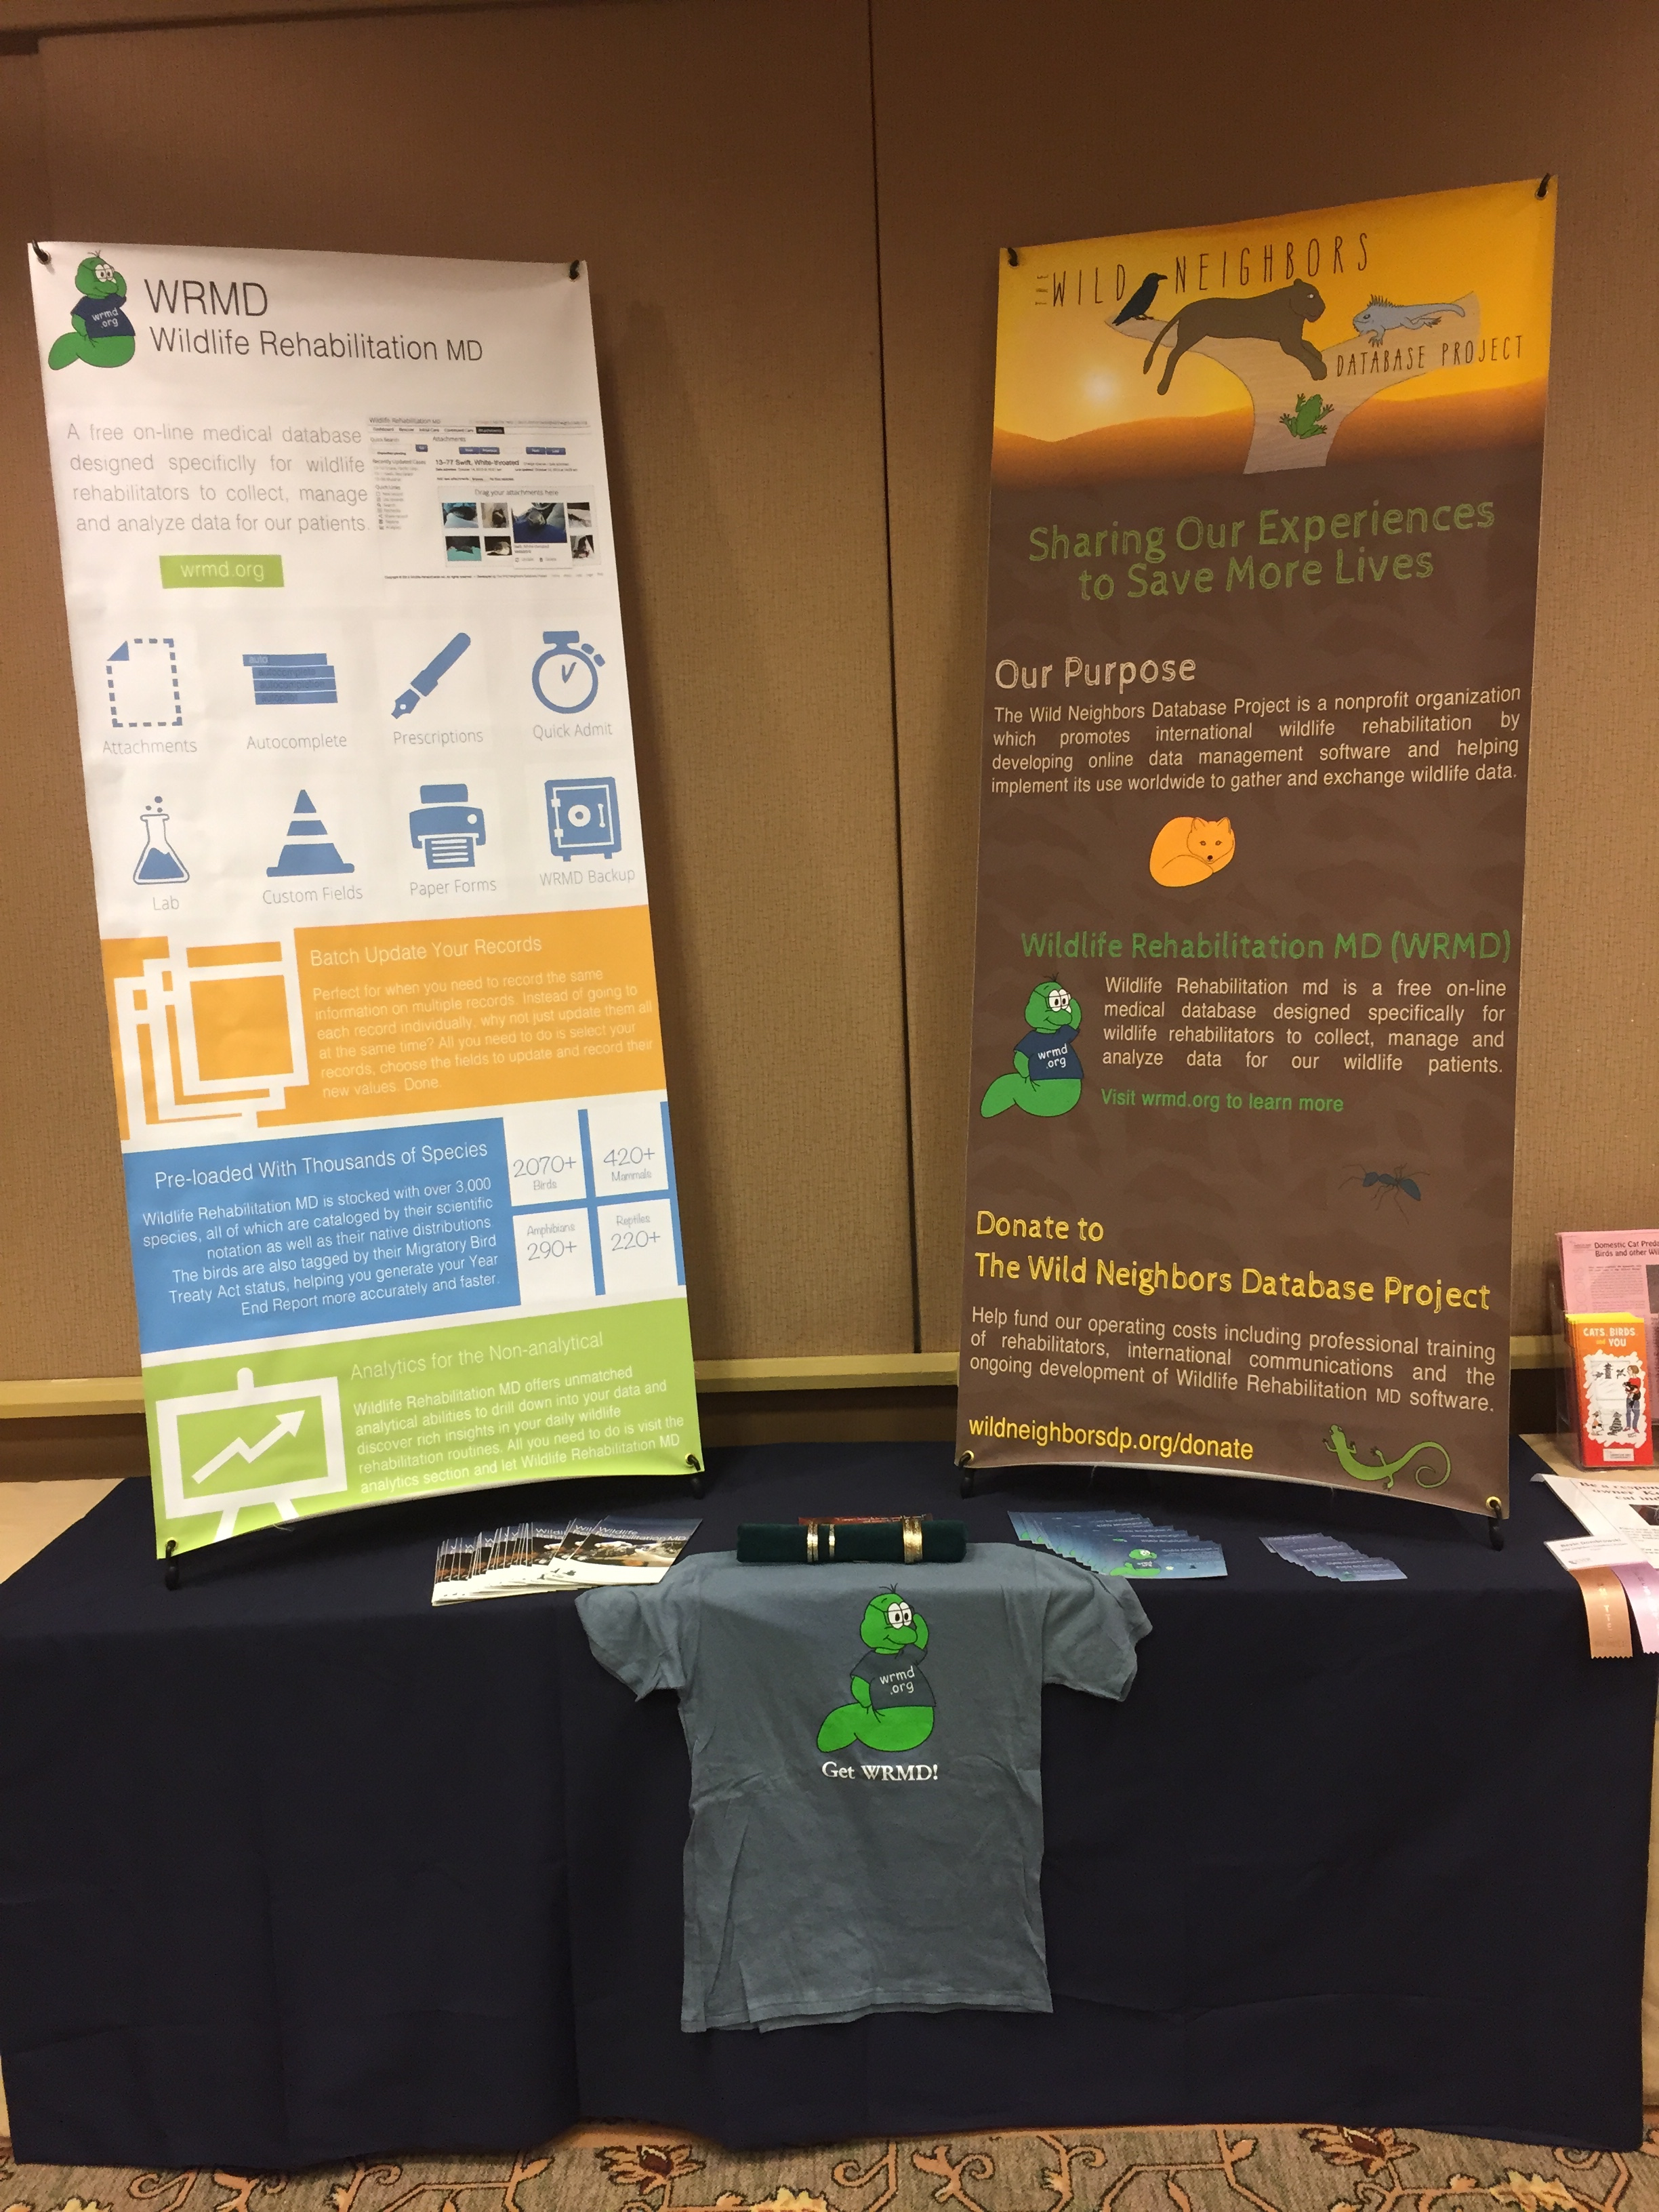 WRMD Booth at CCWR 2014